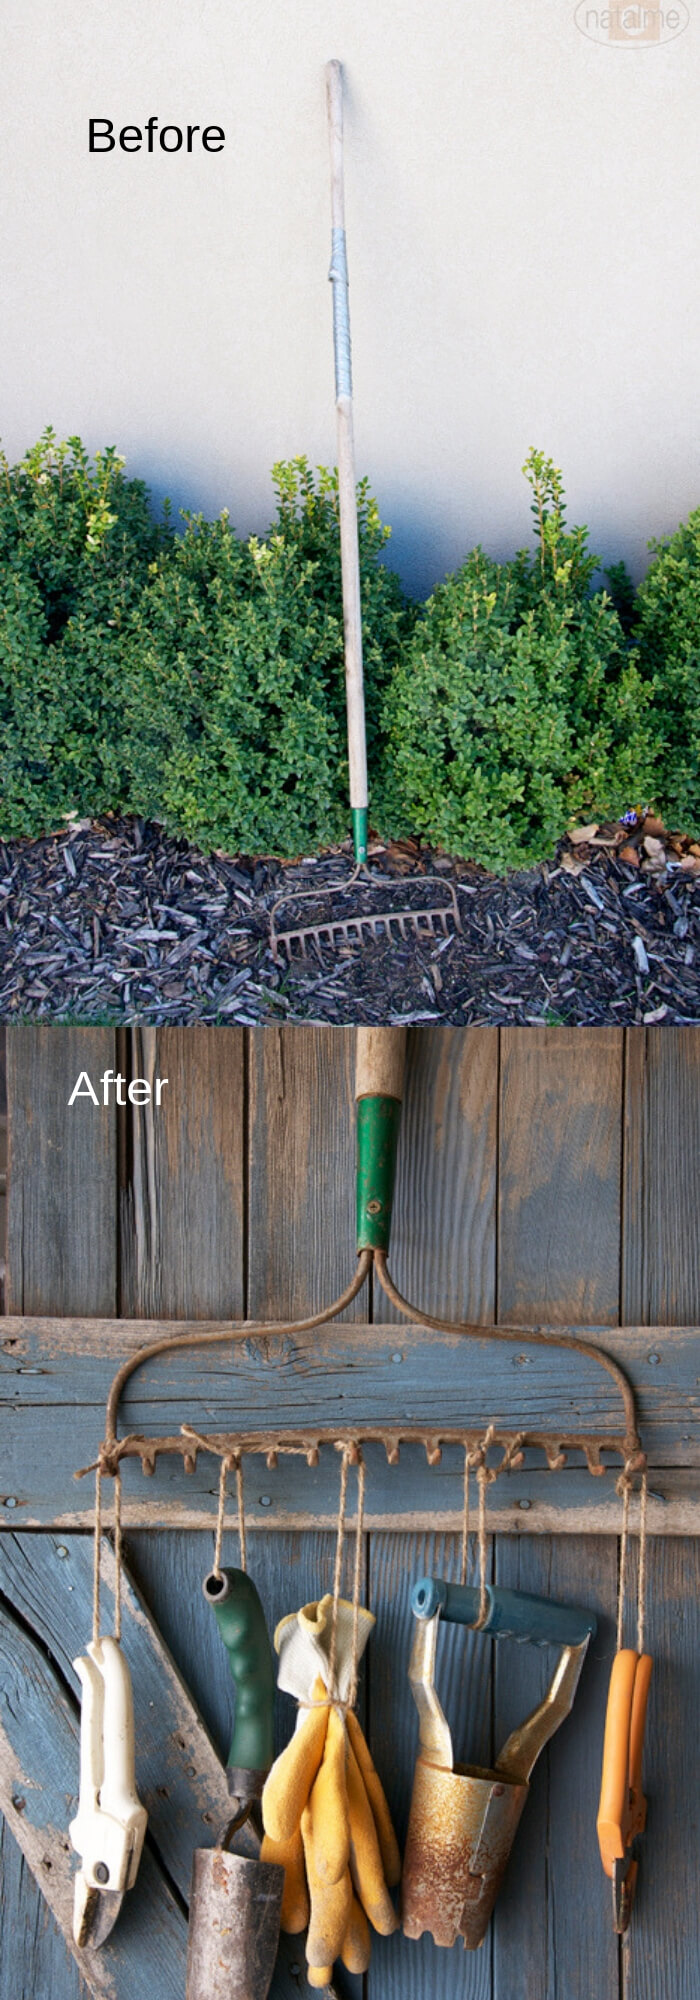 Rake Rack Holder | Best DIY Repurposed Garden Tools Ideas | Garden Craft Ideas